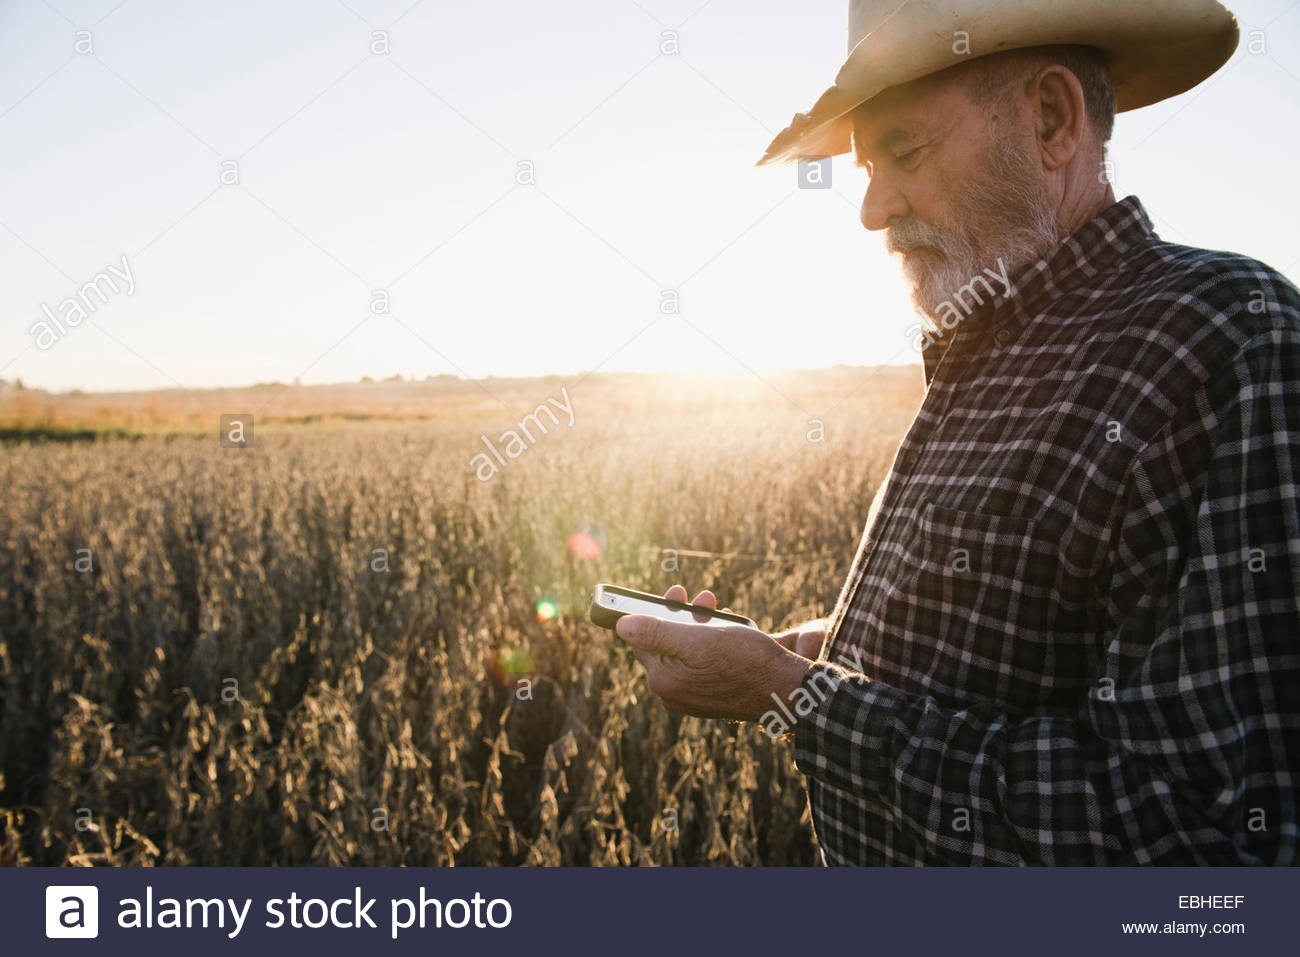 Senior male farmer reading text message on smartphone in soybean field, Plattsburg, Missouri, USA - Stock Image